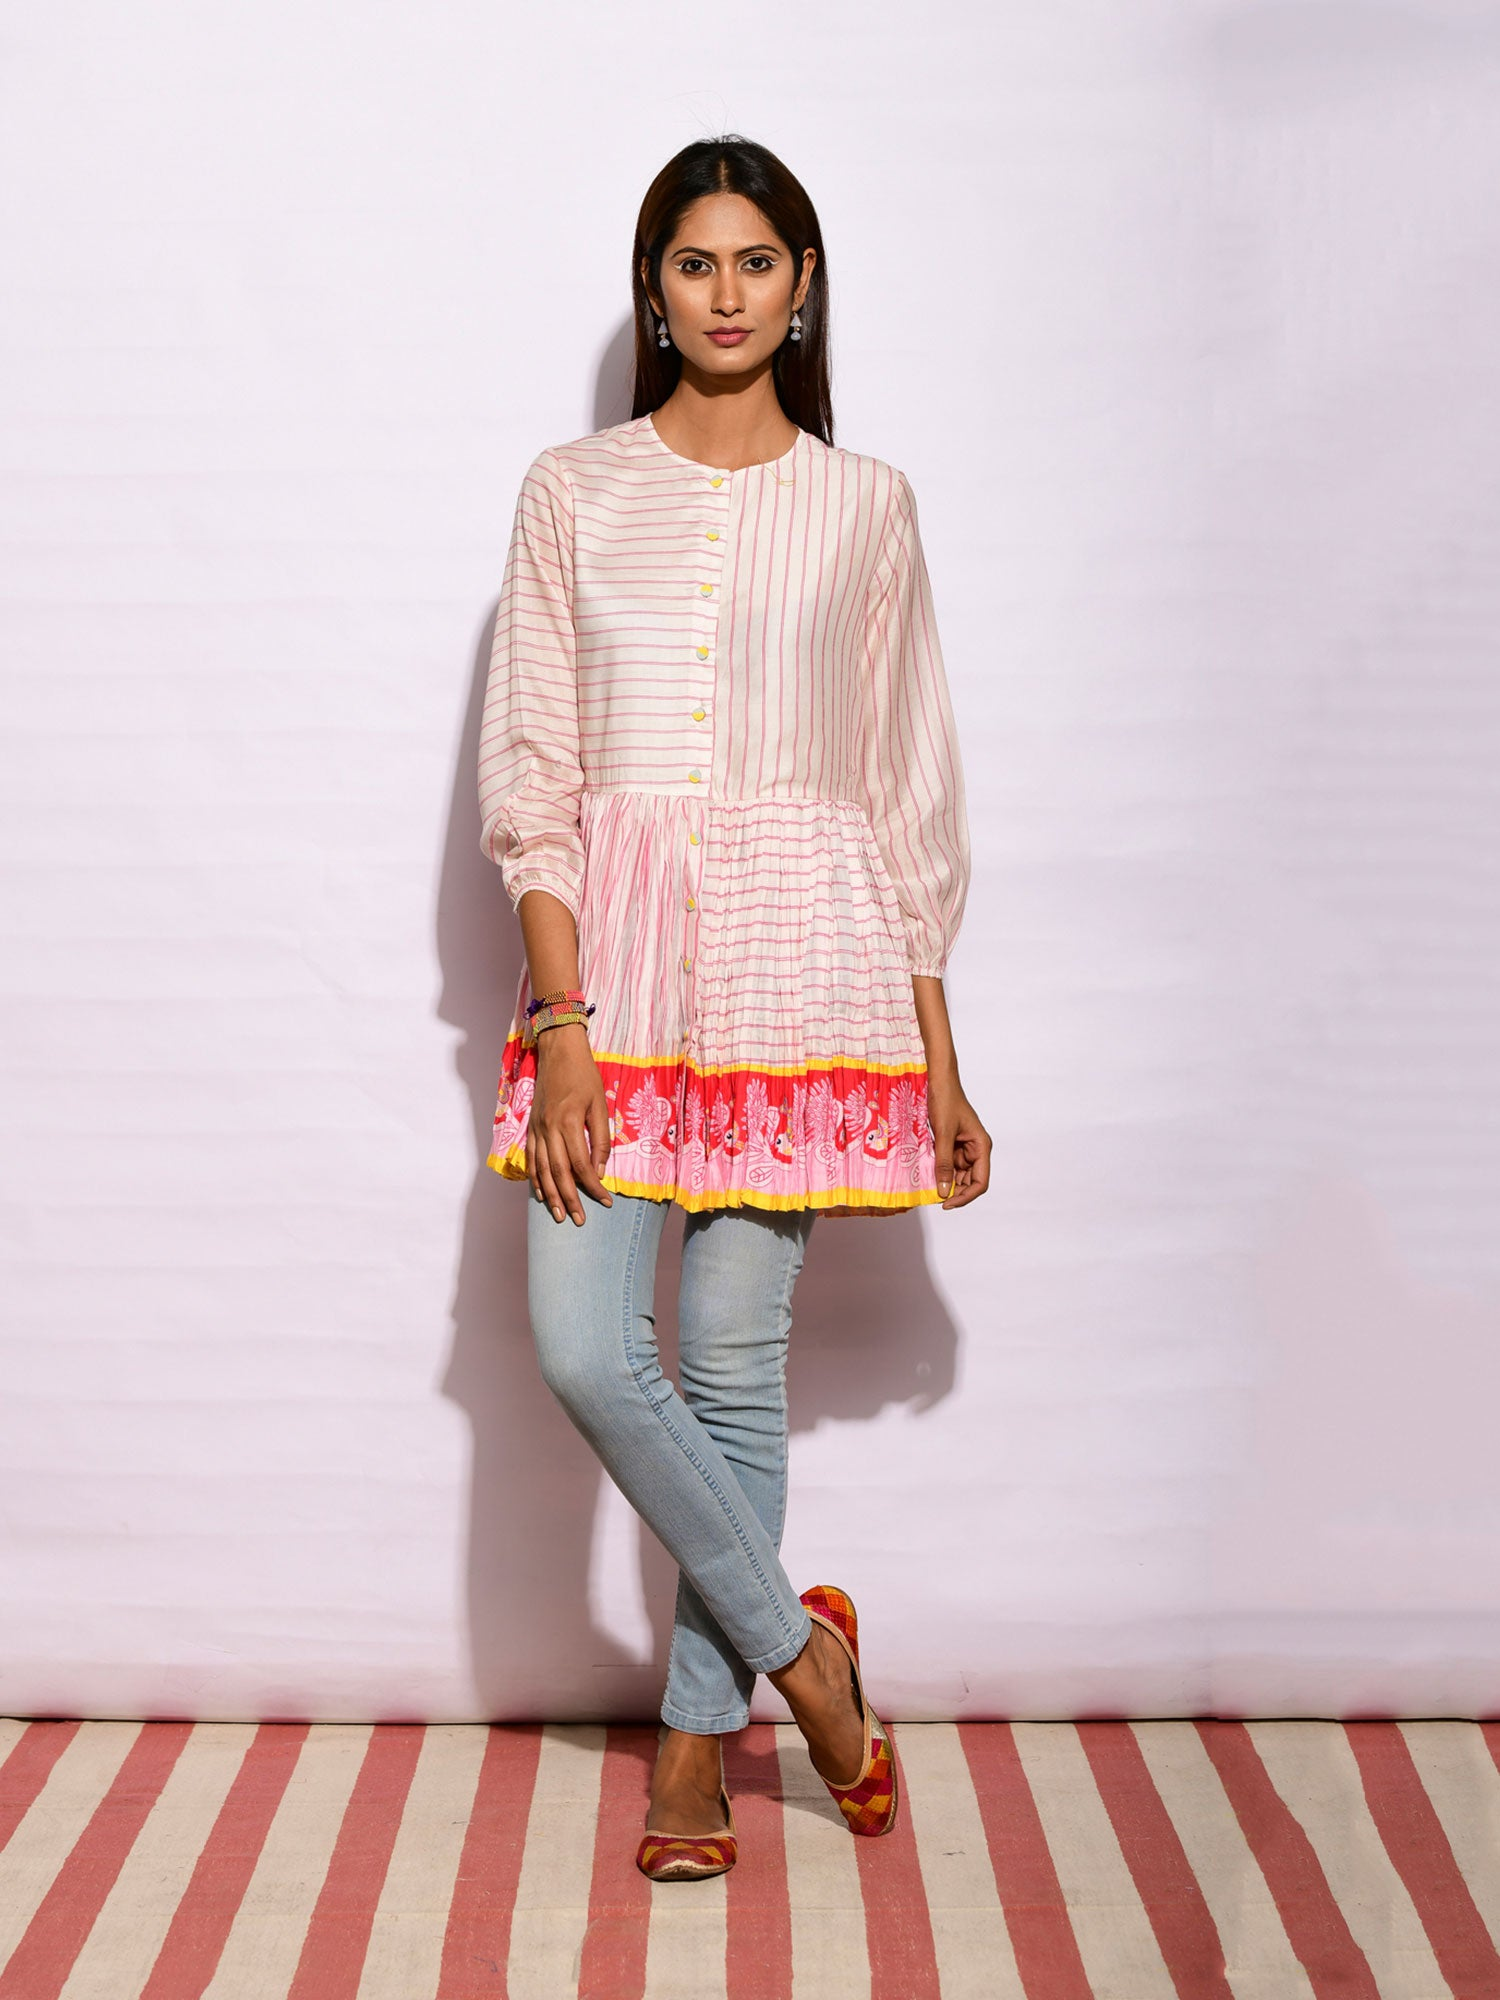 tunics, kurtas, style, fashion, indiancontemporaryfashion, indianapparel, womenswear, swativijaivargie, PRINTEDTUNICS